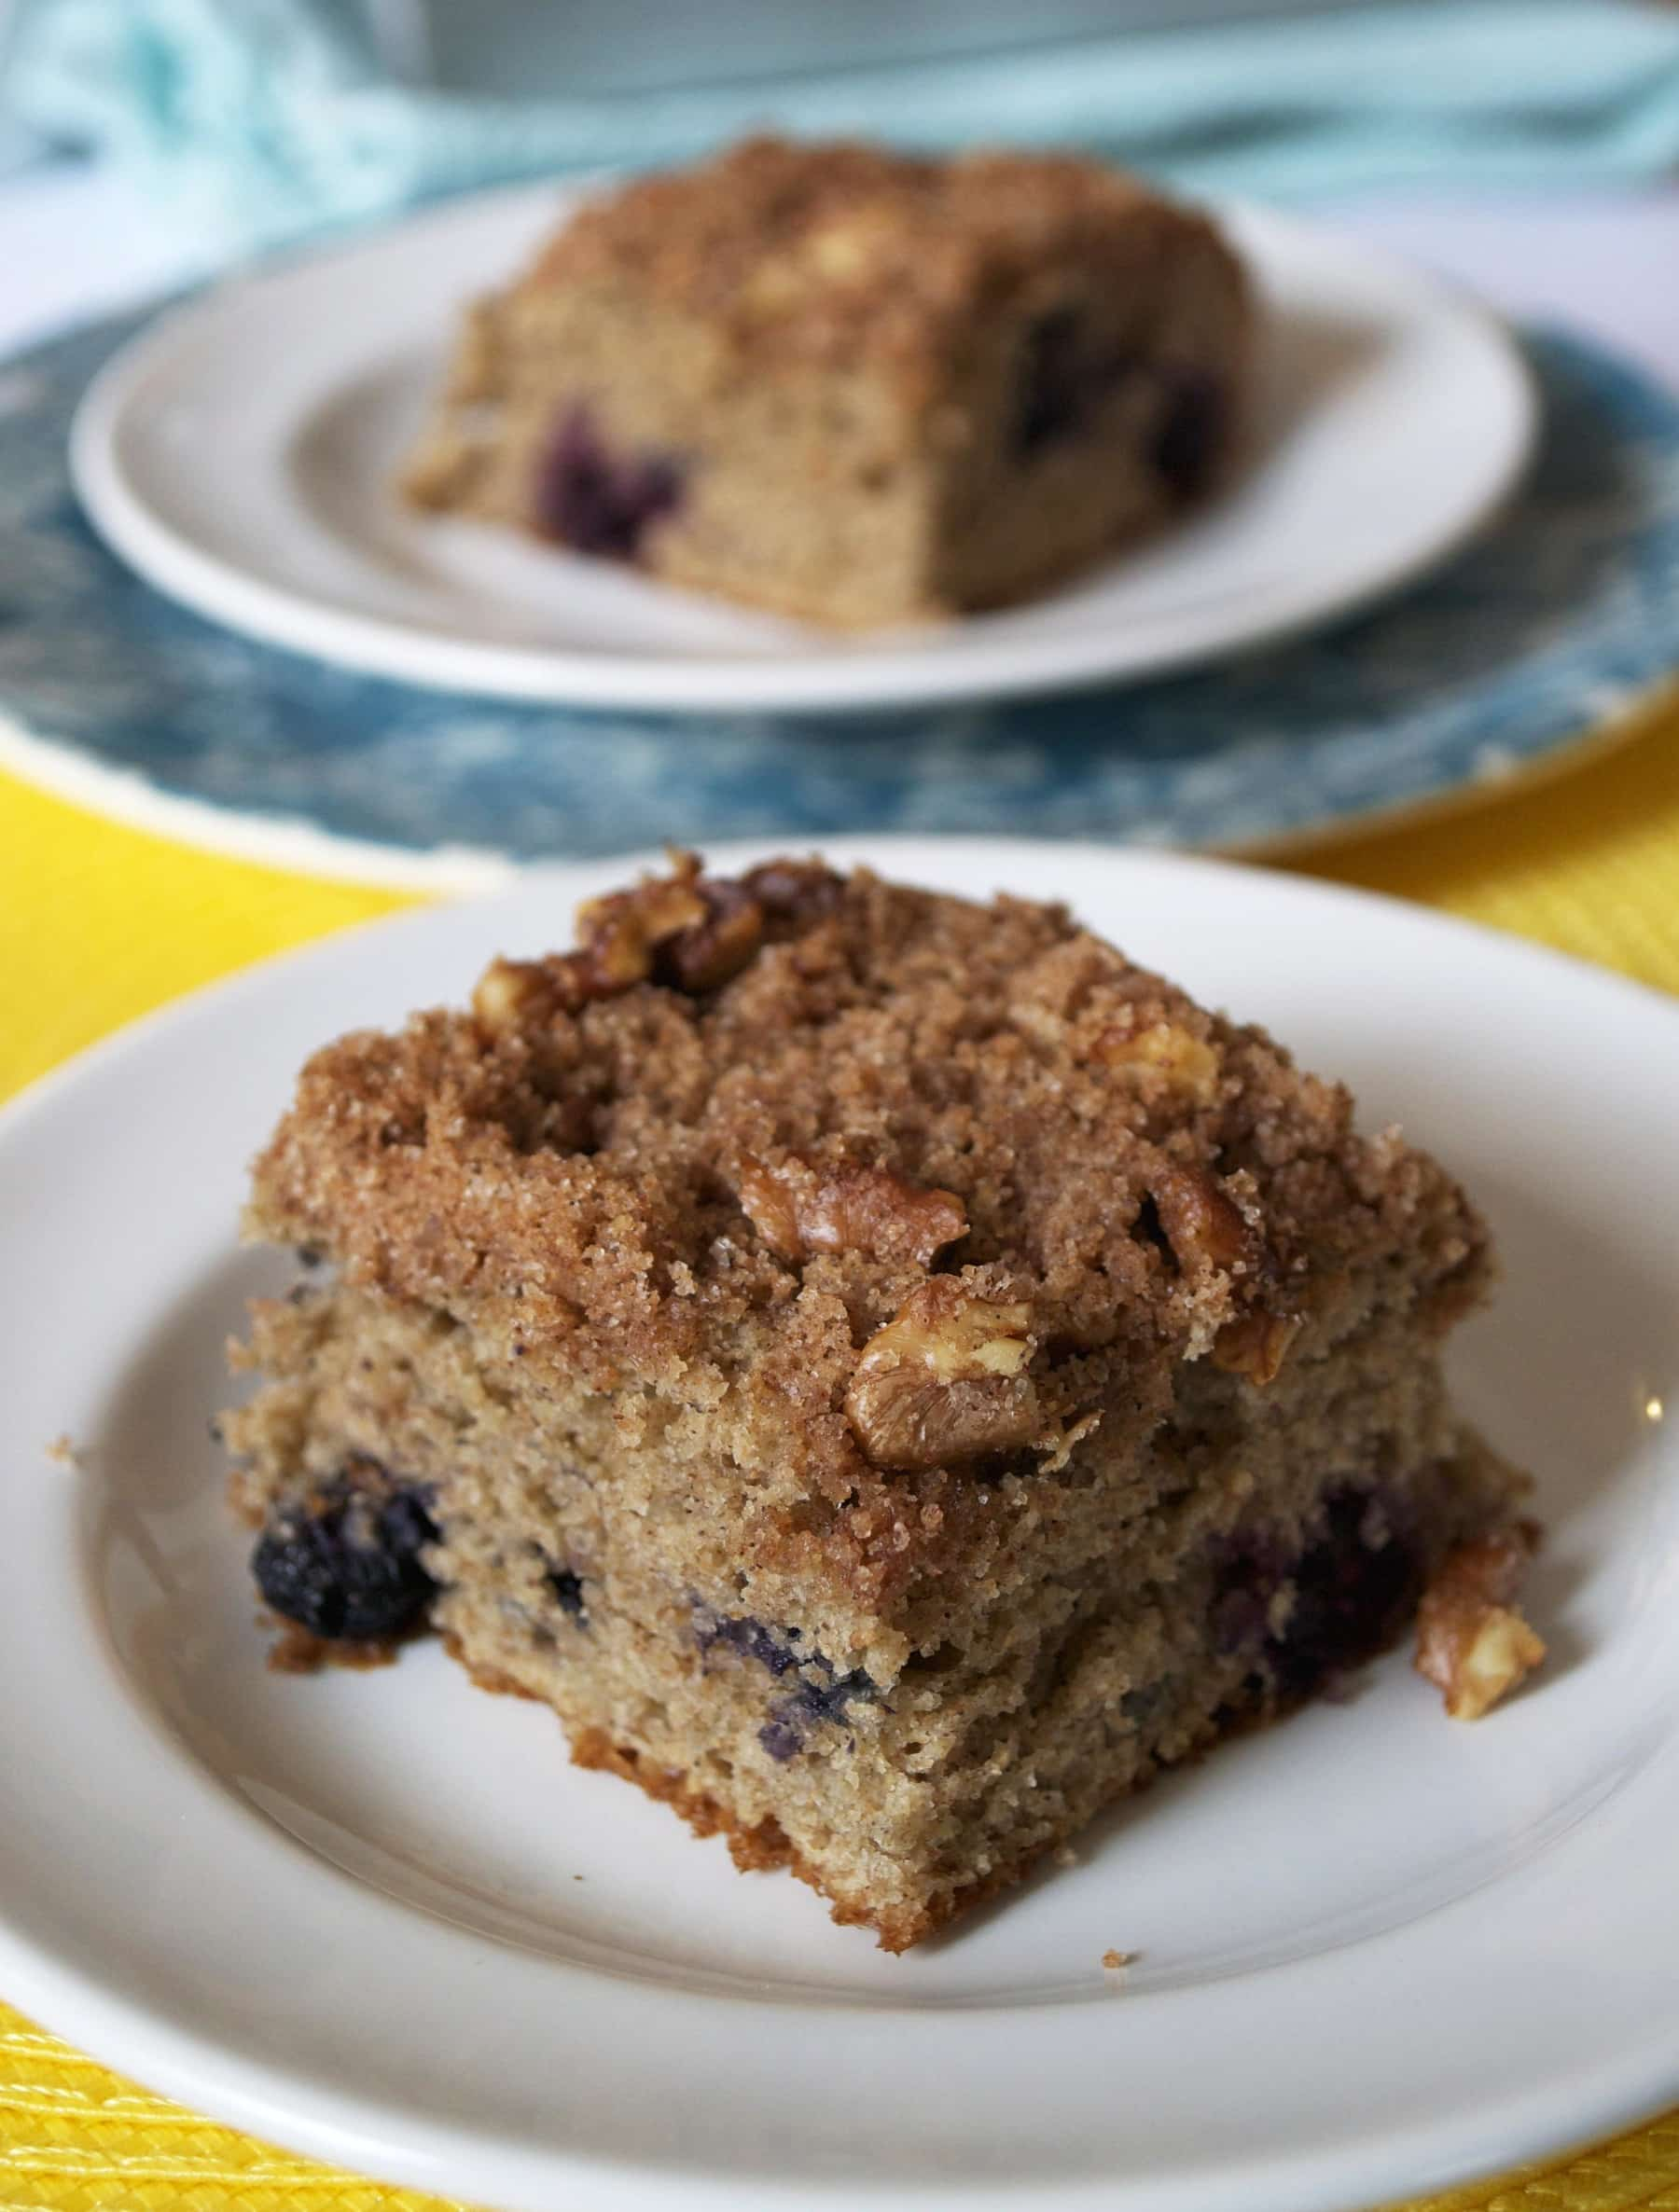 BEST-Blueberry-Coffee-Crumb-Cake-Recipe-The-Law-Students-Wife-5